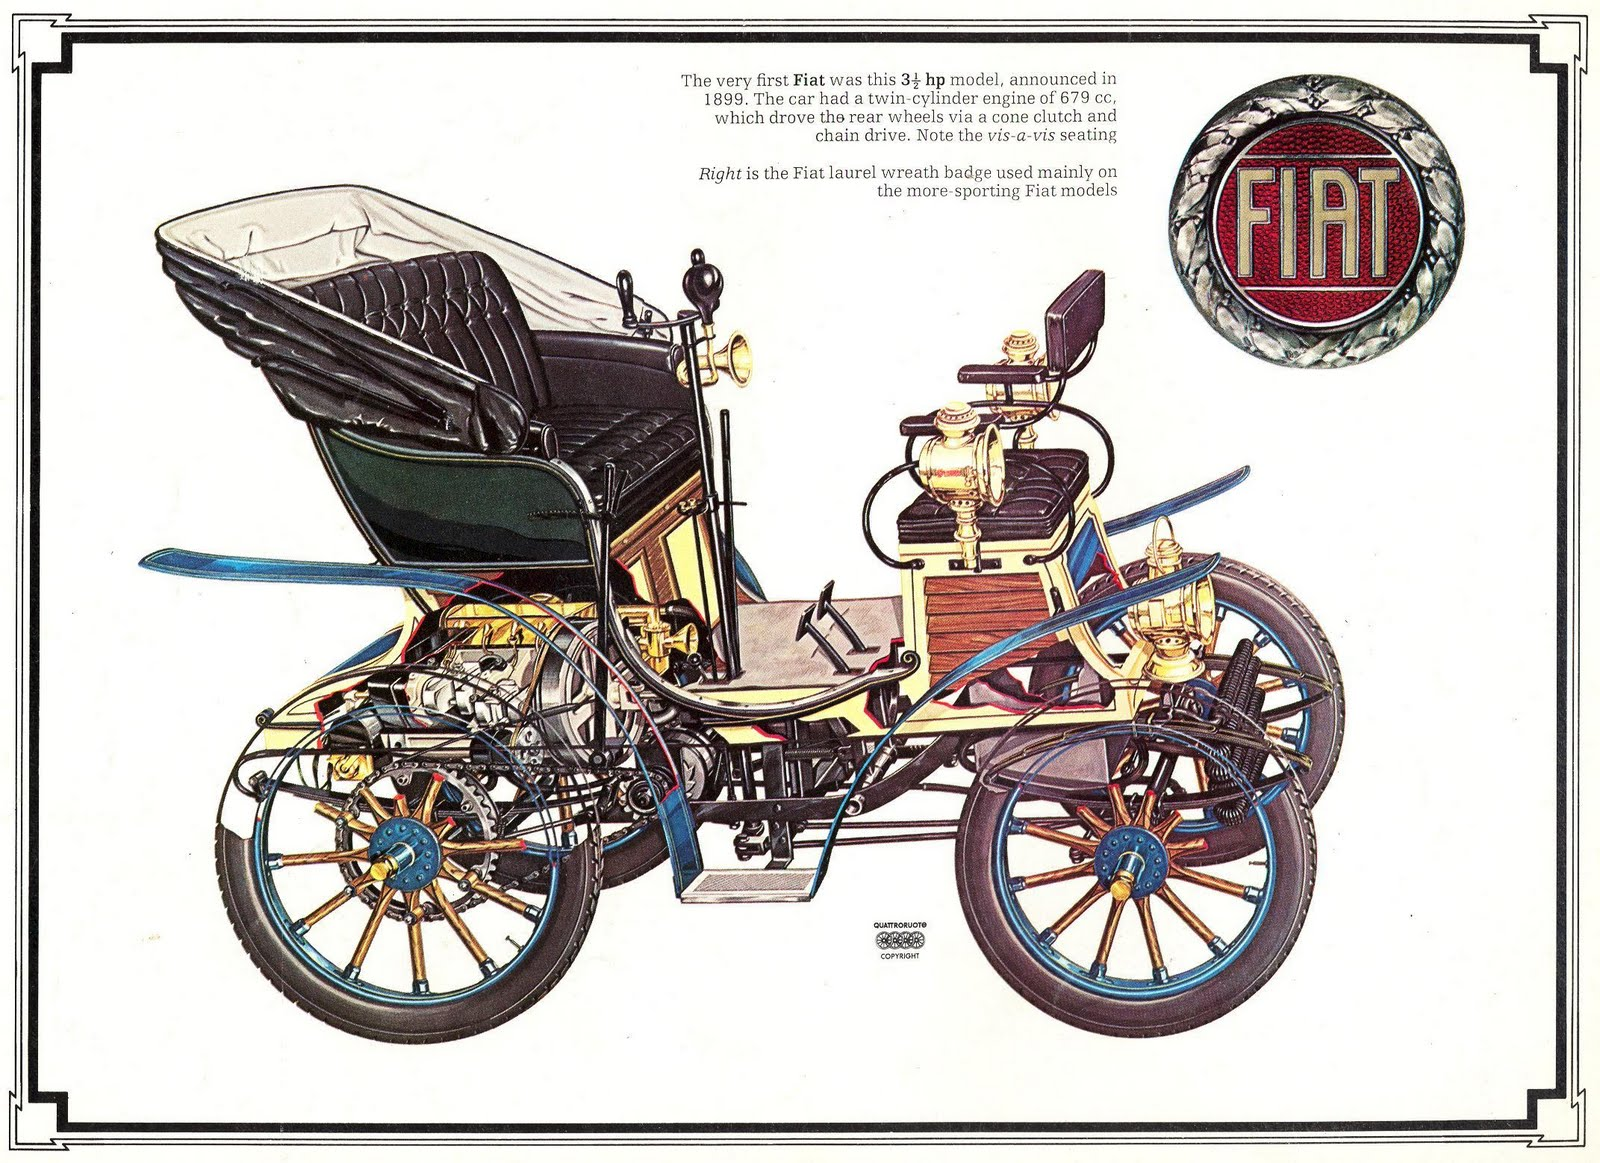 Car Spotters Guide Hronoautoblog: 1899-1900 г. Fiat 3.5 HP .